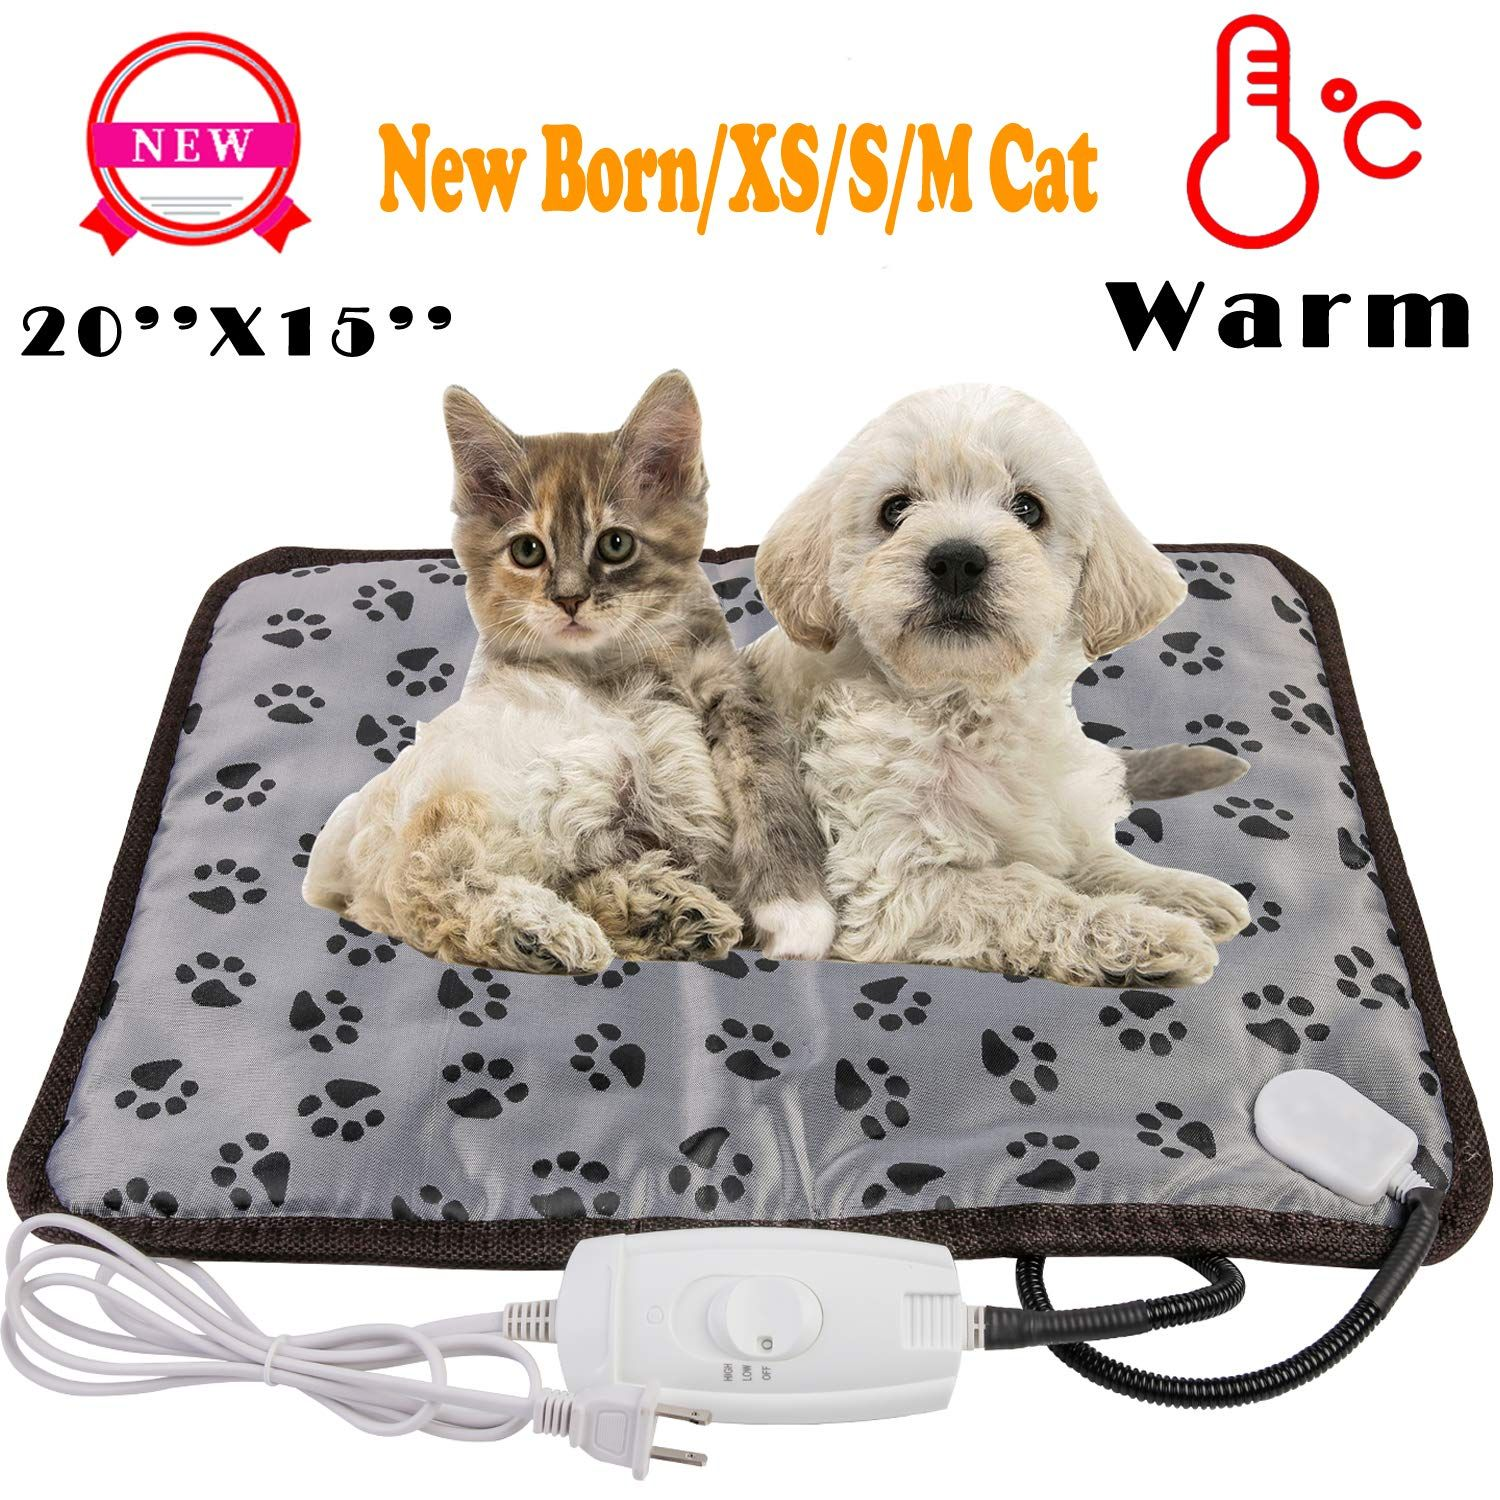 Wangstar X Large Pet Heating Pad And Pet Heated Blanket Warm Pet Heat Mat For Dogs Cats With Chew Resistant Cord Wate Pet Heating Pad Pet Pads Heated Pet Beds